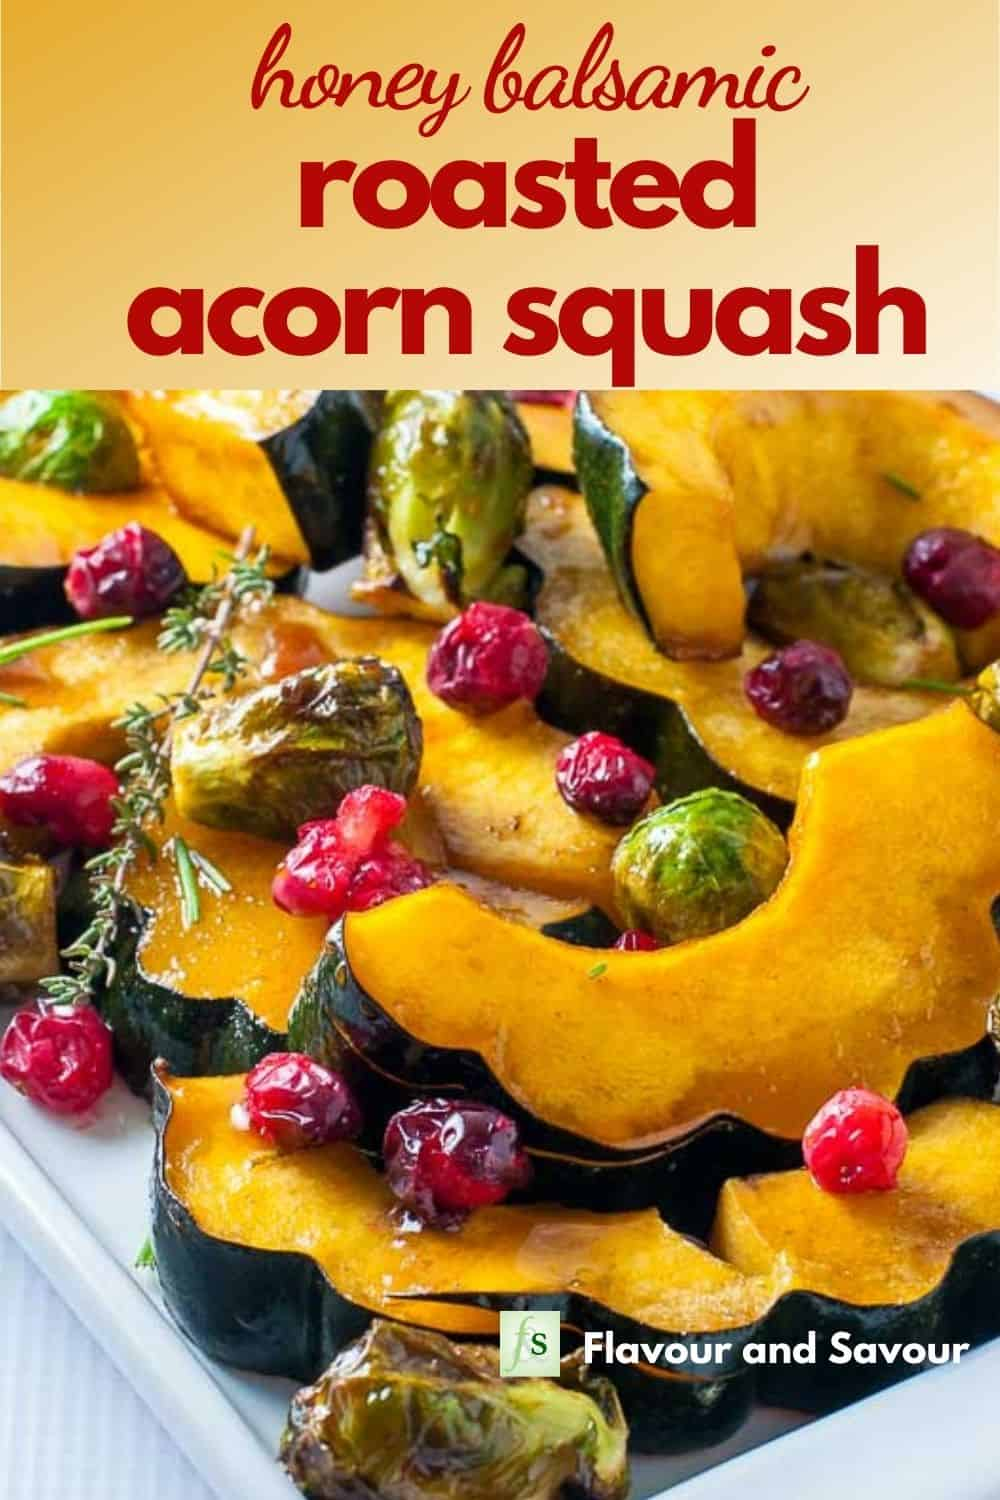 Pinterest image for Honey Balsamic Roasted Acorn Squash with text overlay